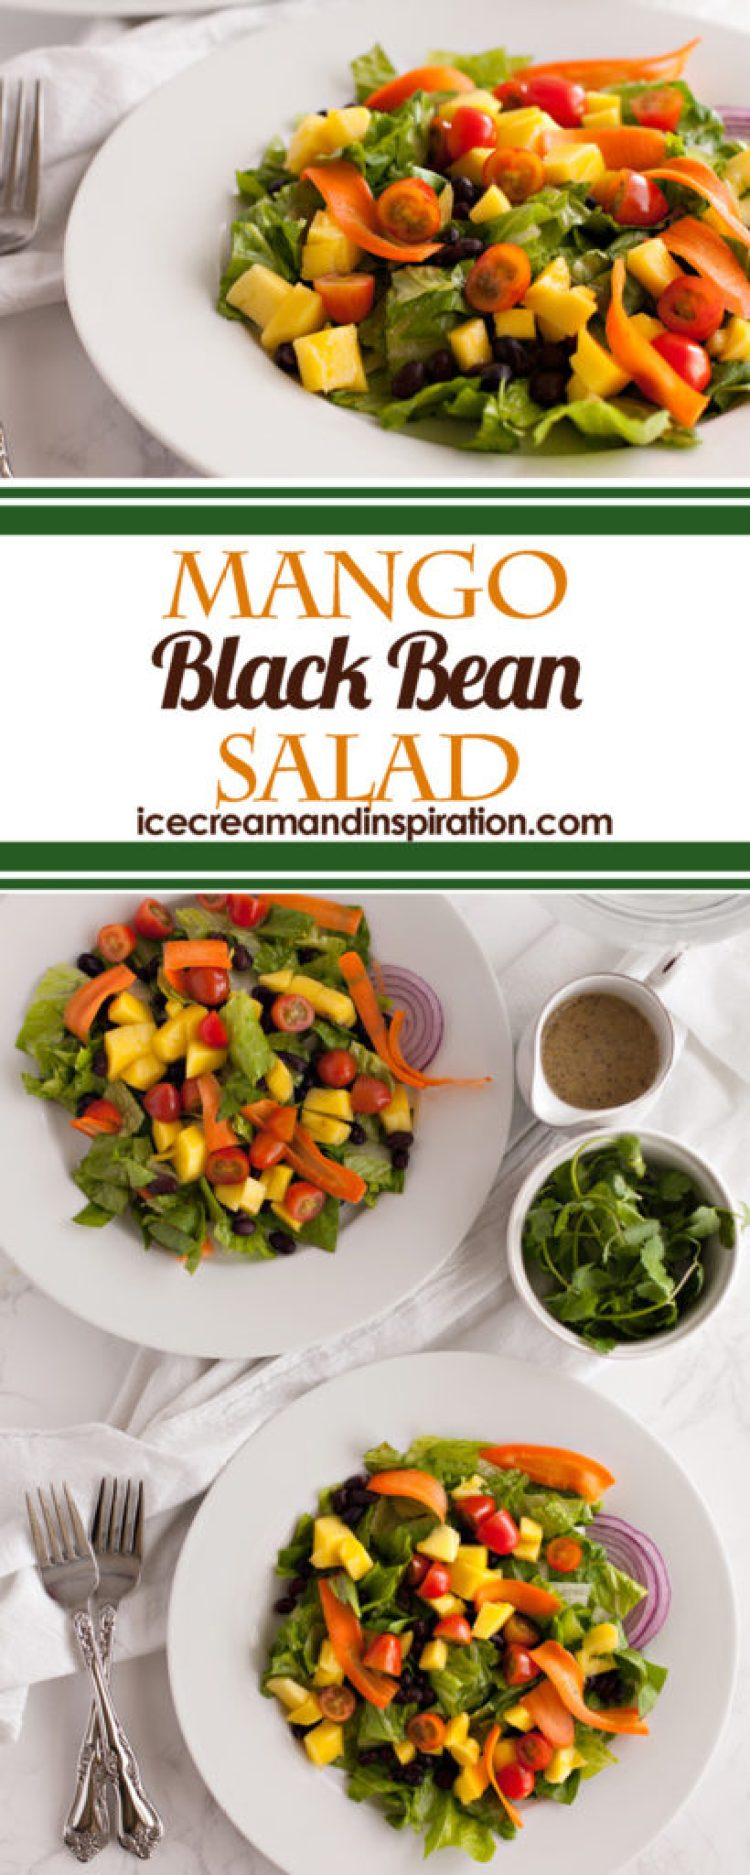 Looking for black bean recipes? You've found a great one here with this Mango Black Bean Salad. Full of color and nutrition, this delicious salad with a light vinaigrette is perfect for a summer meal!